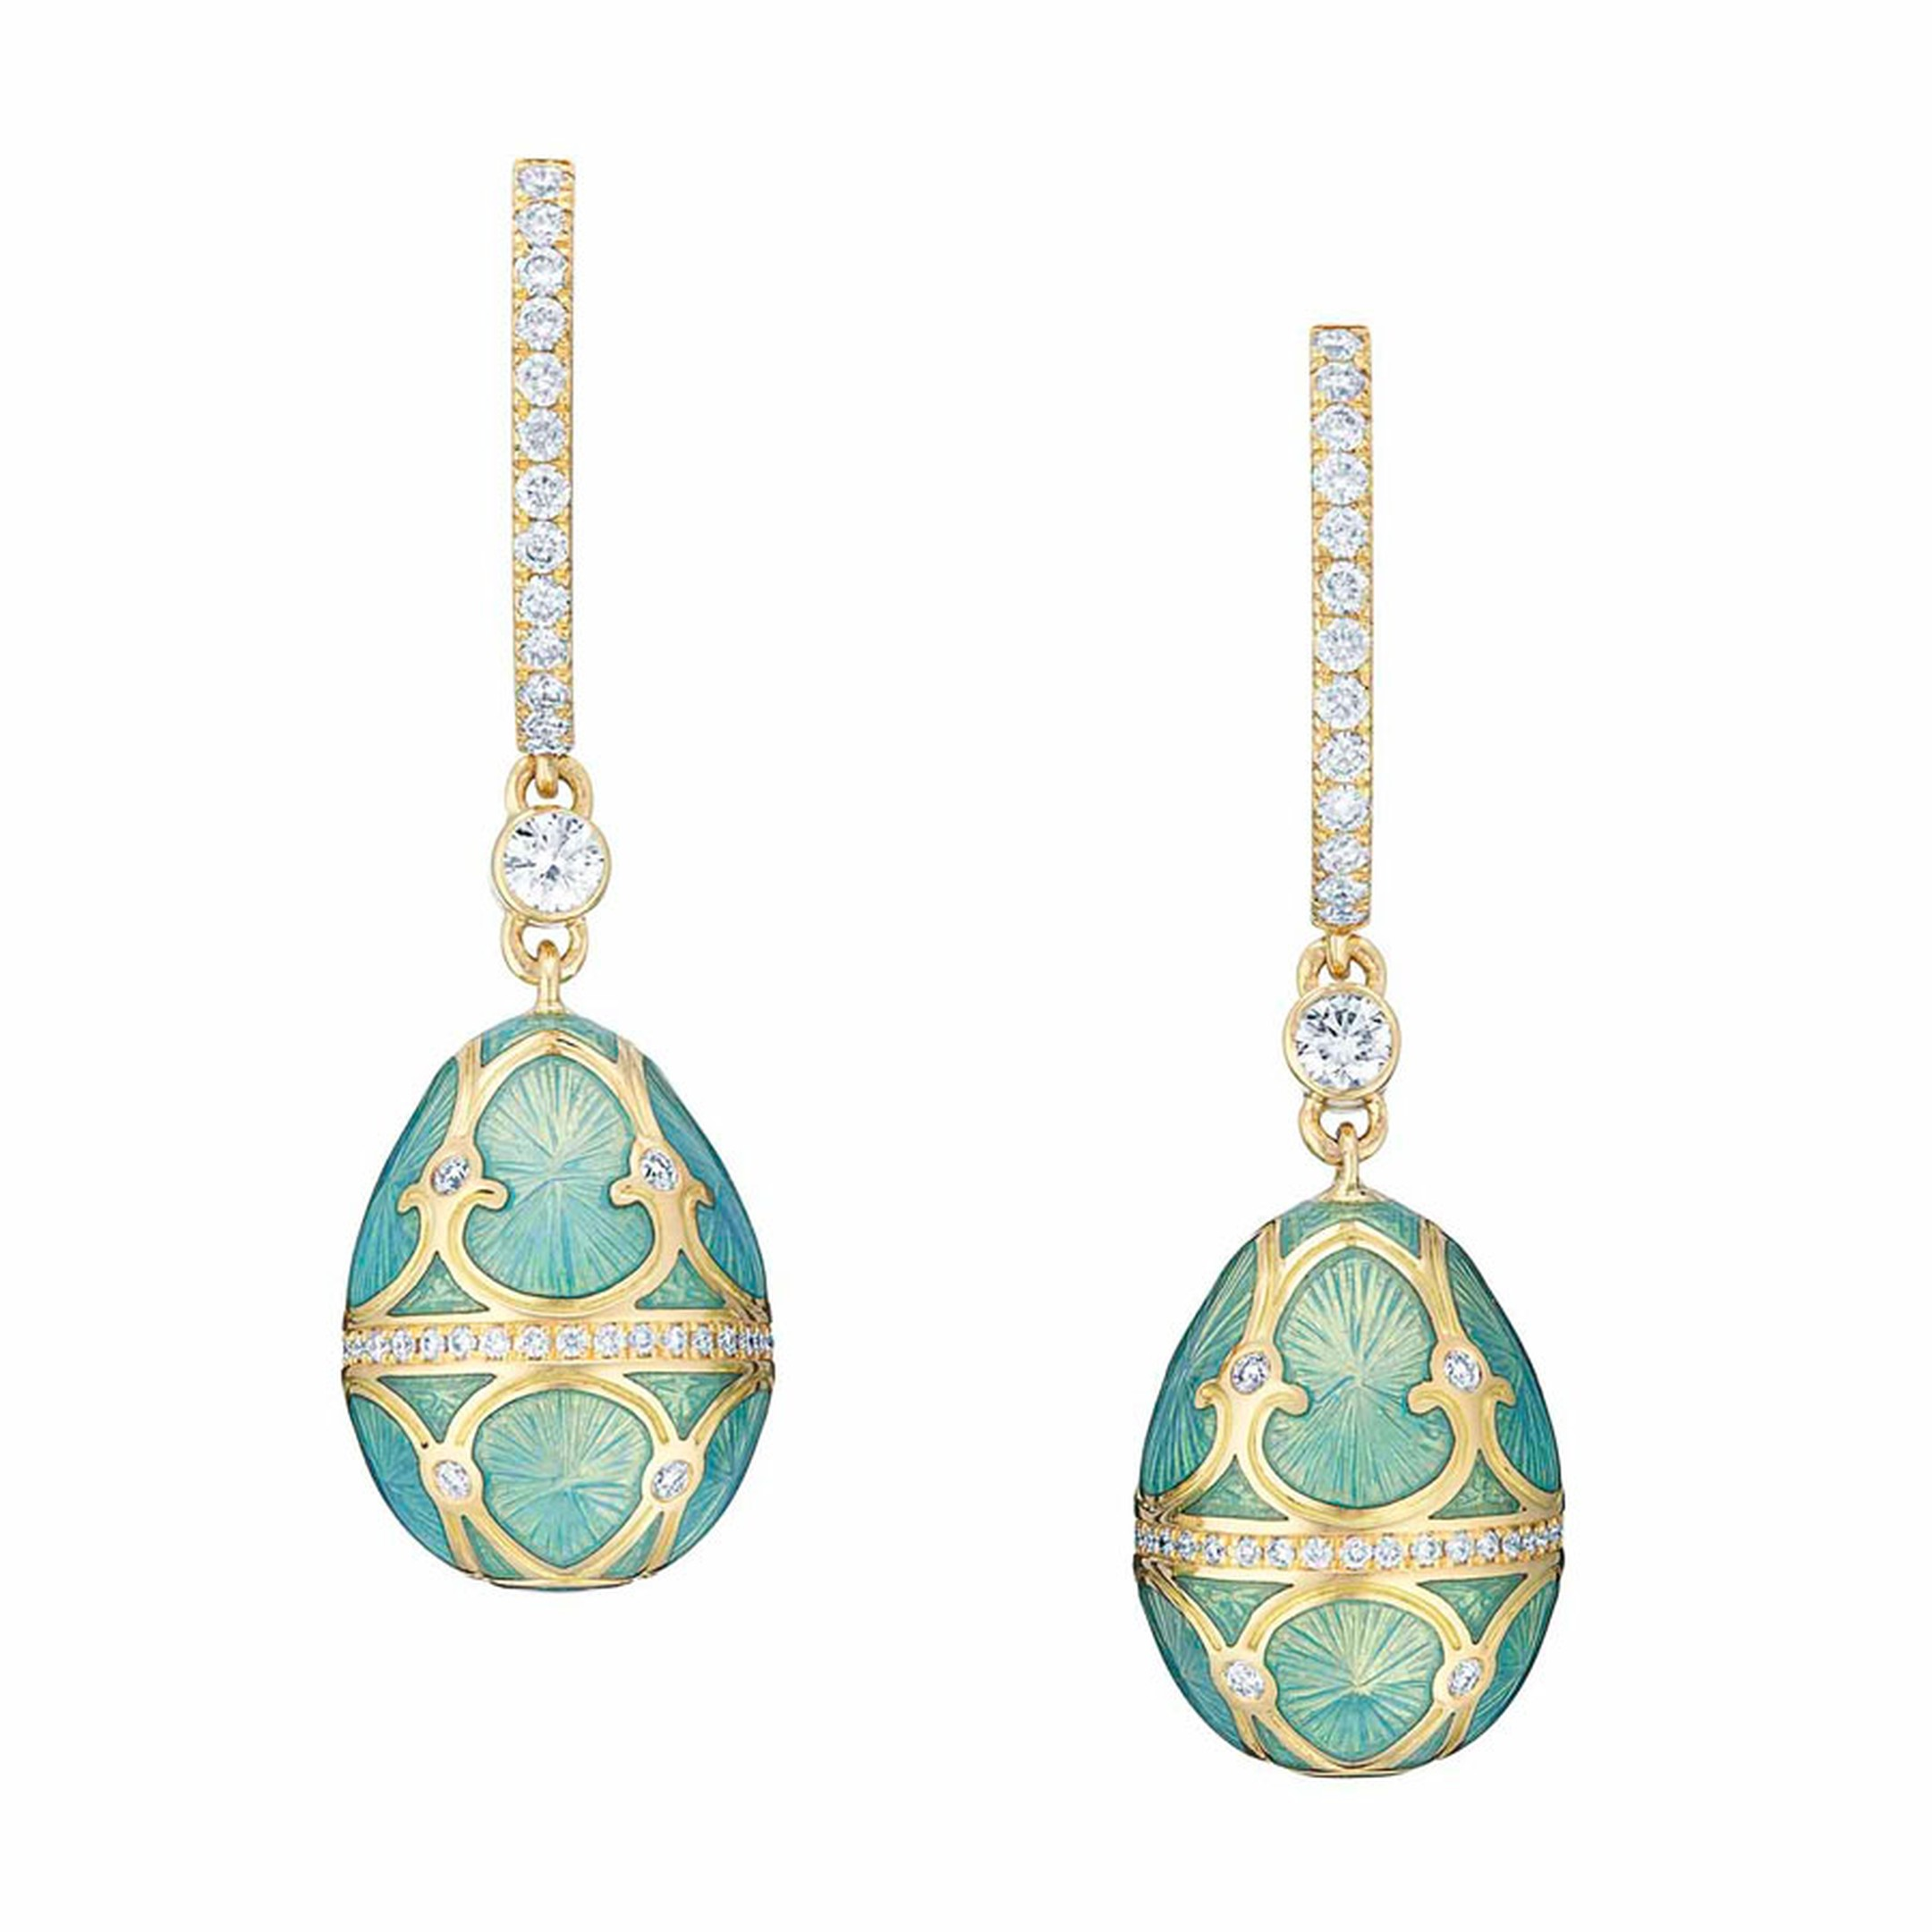 Faberge-Tsarskoye-Selo-Pave-Earrings-Lagon.jpg